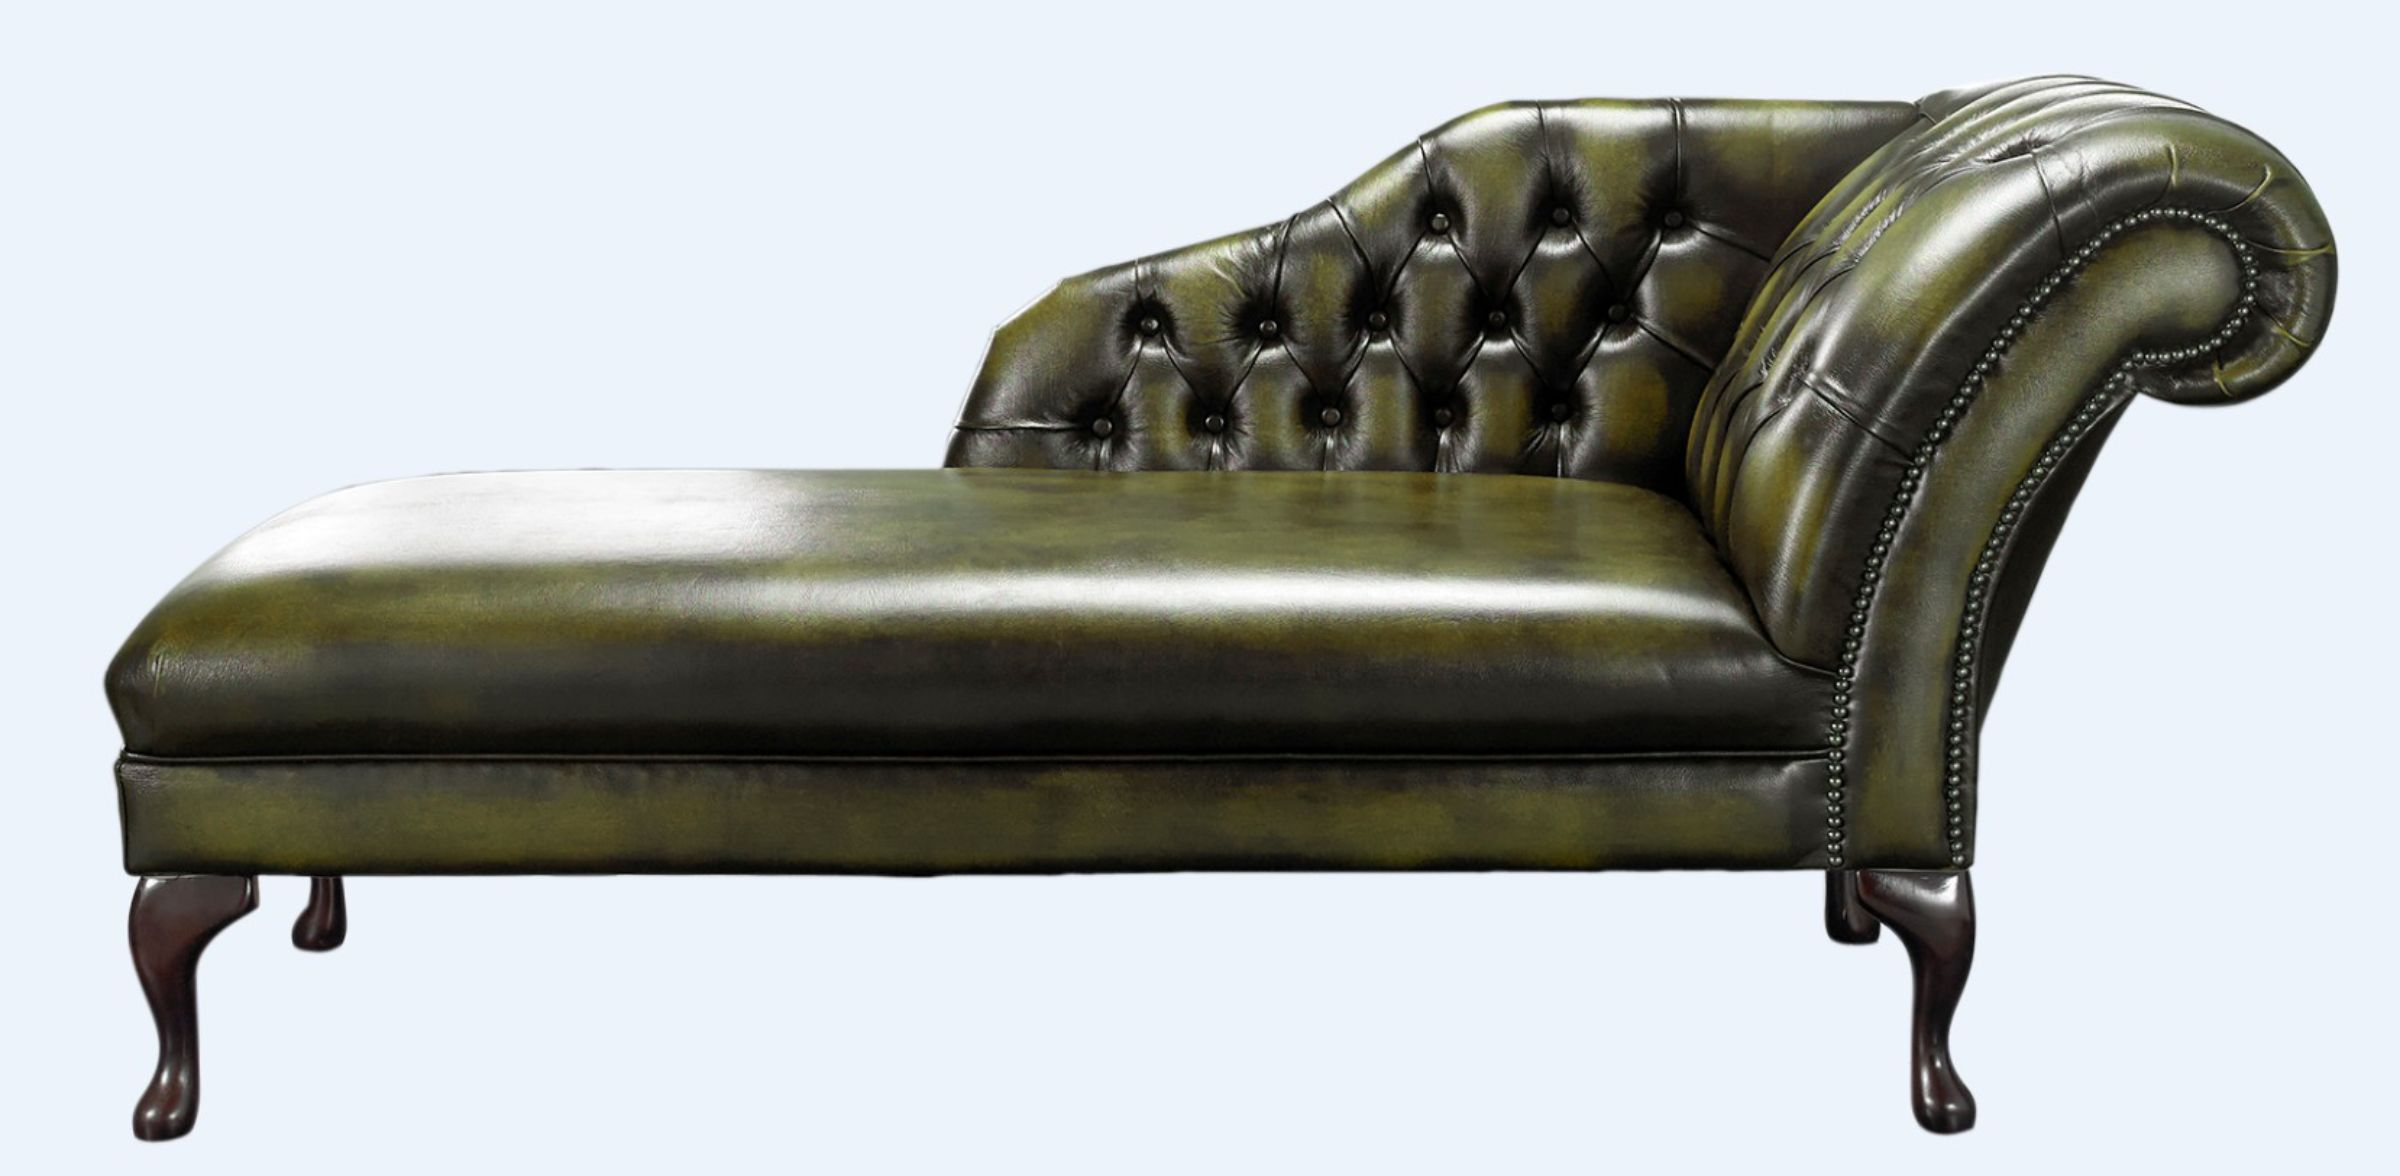 Olive Green Chesterfield Chaise Lounge Day Bed